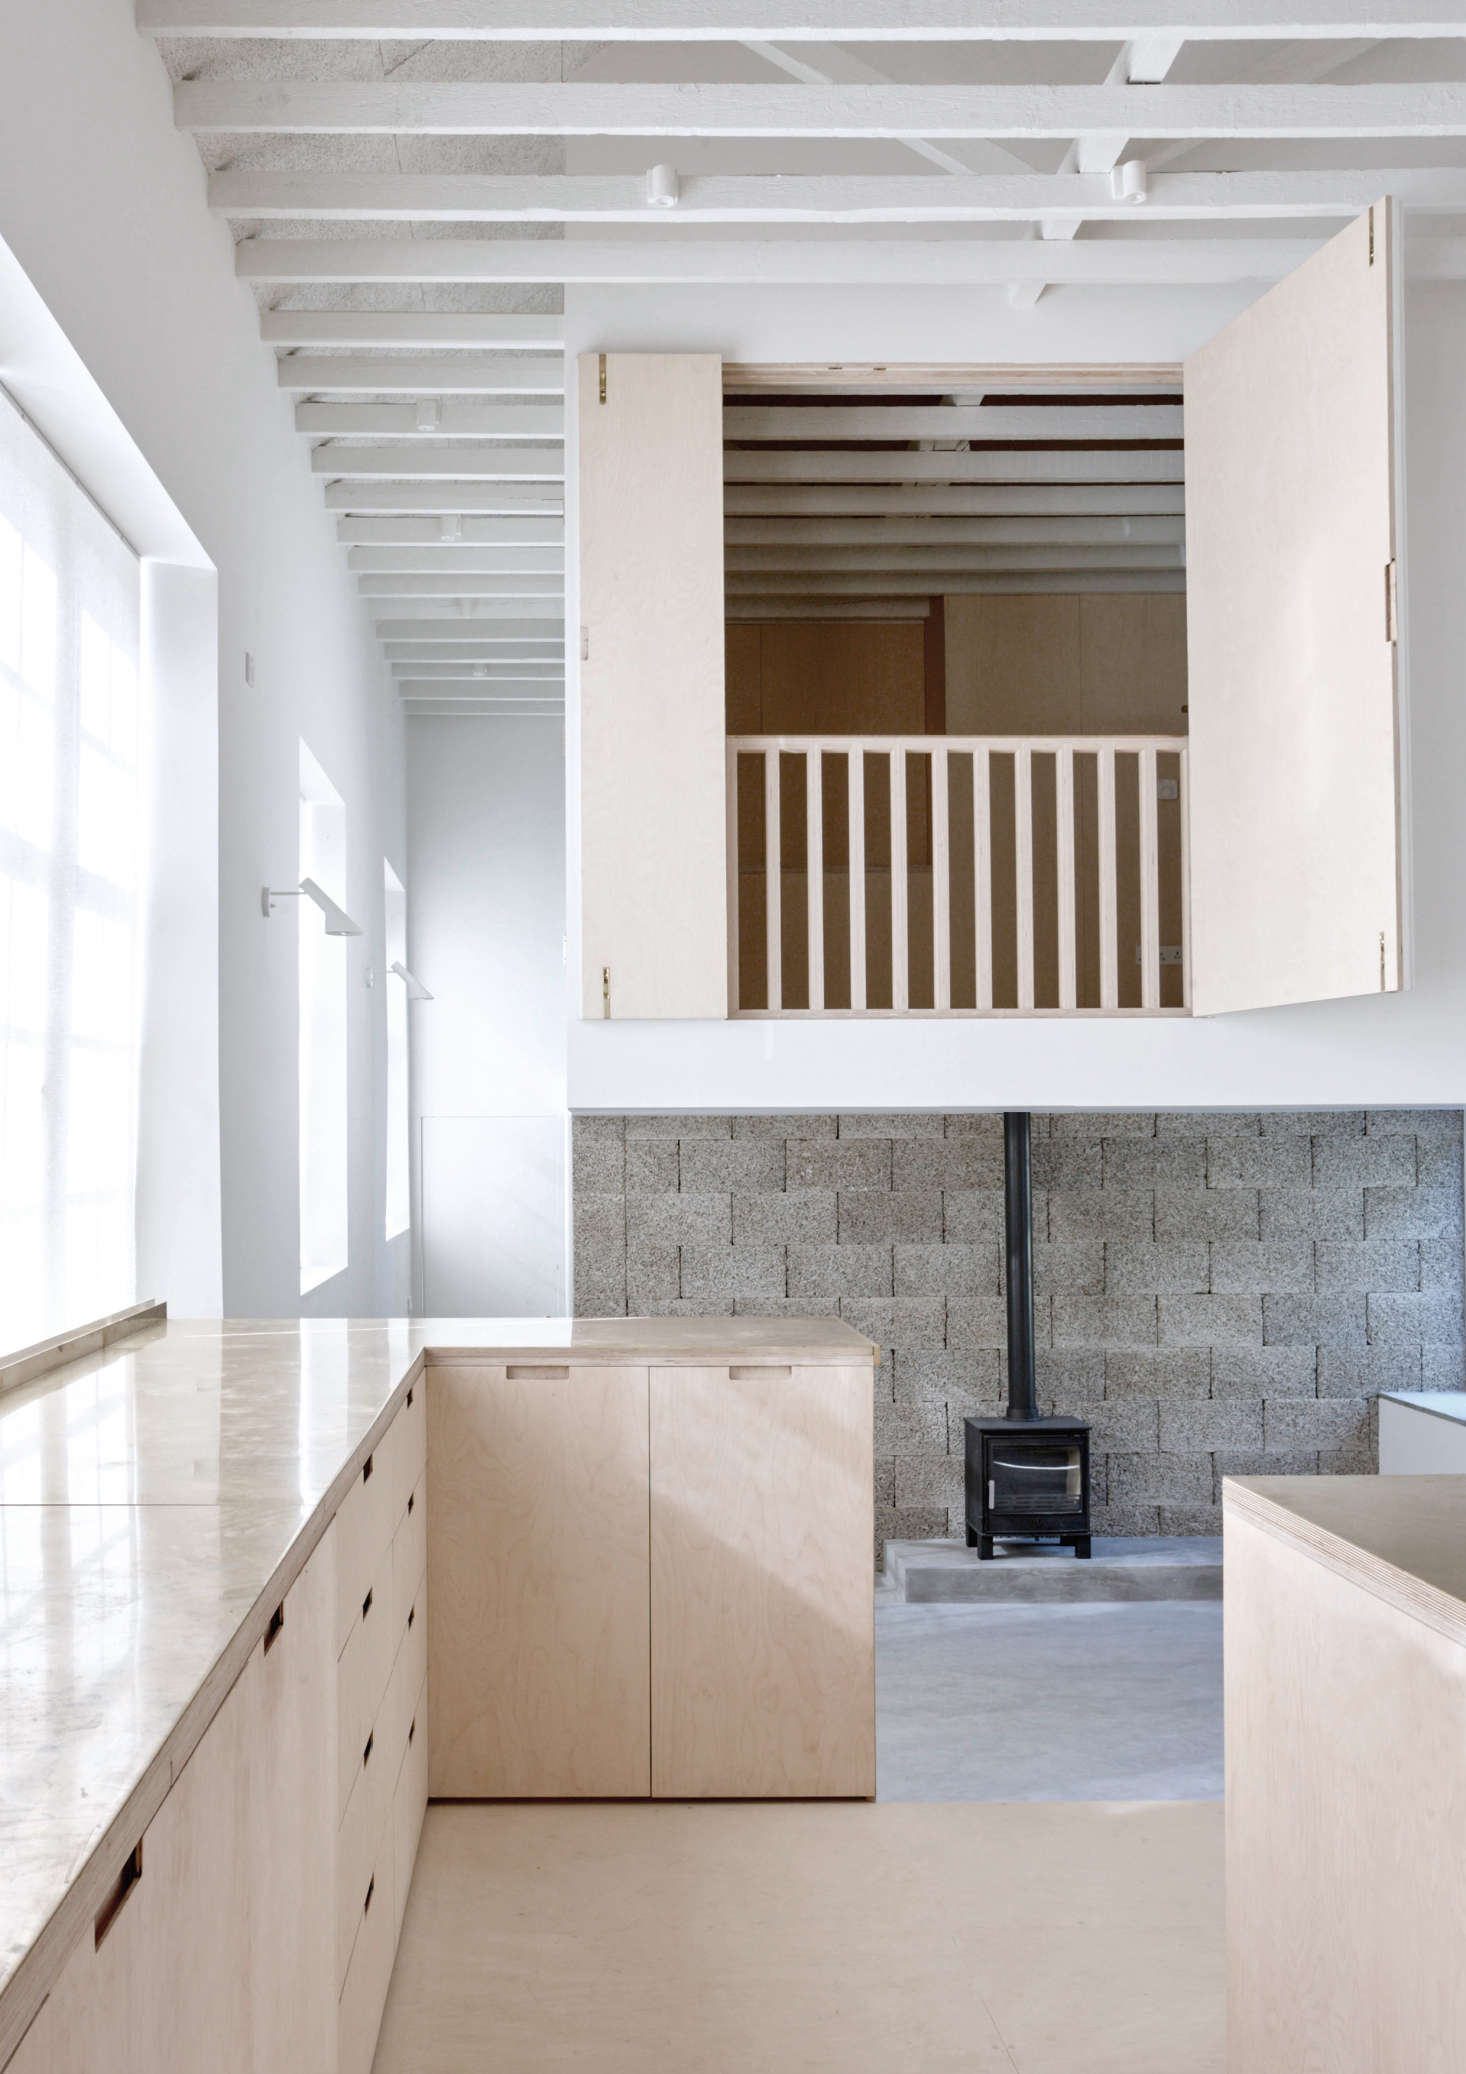 Thesecond-story bedroom—with shutters and railing that open it to the light and life downstairs—appears to float overhead. How were the architects able to pull off this legerdemain?